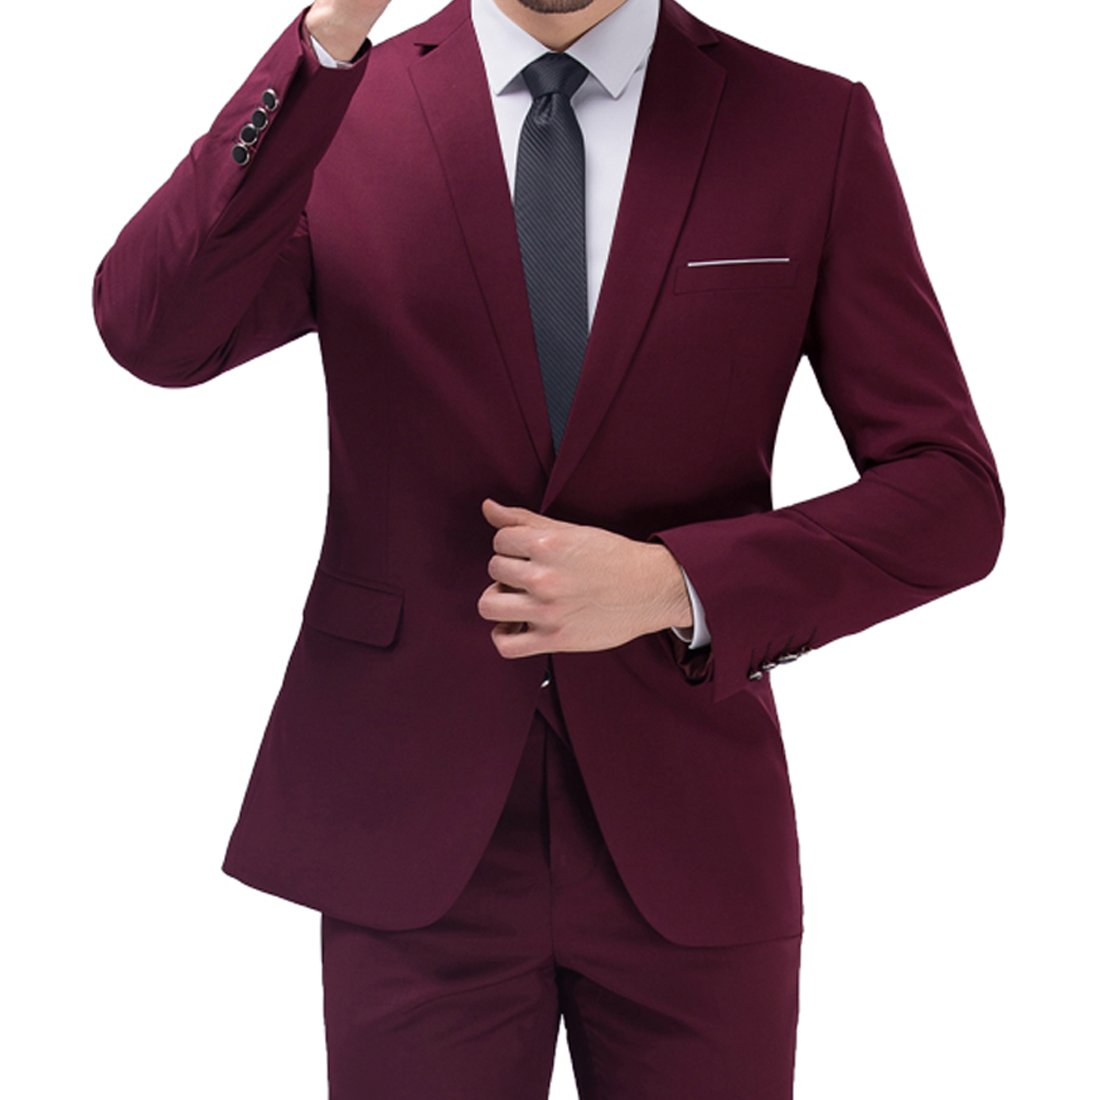 Jearey Mens Blazer Casual Slim Fit Lapel Suit Jacket One Button Daily Business Dress Coat (Wine Red, X-Large)